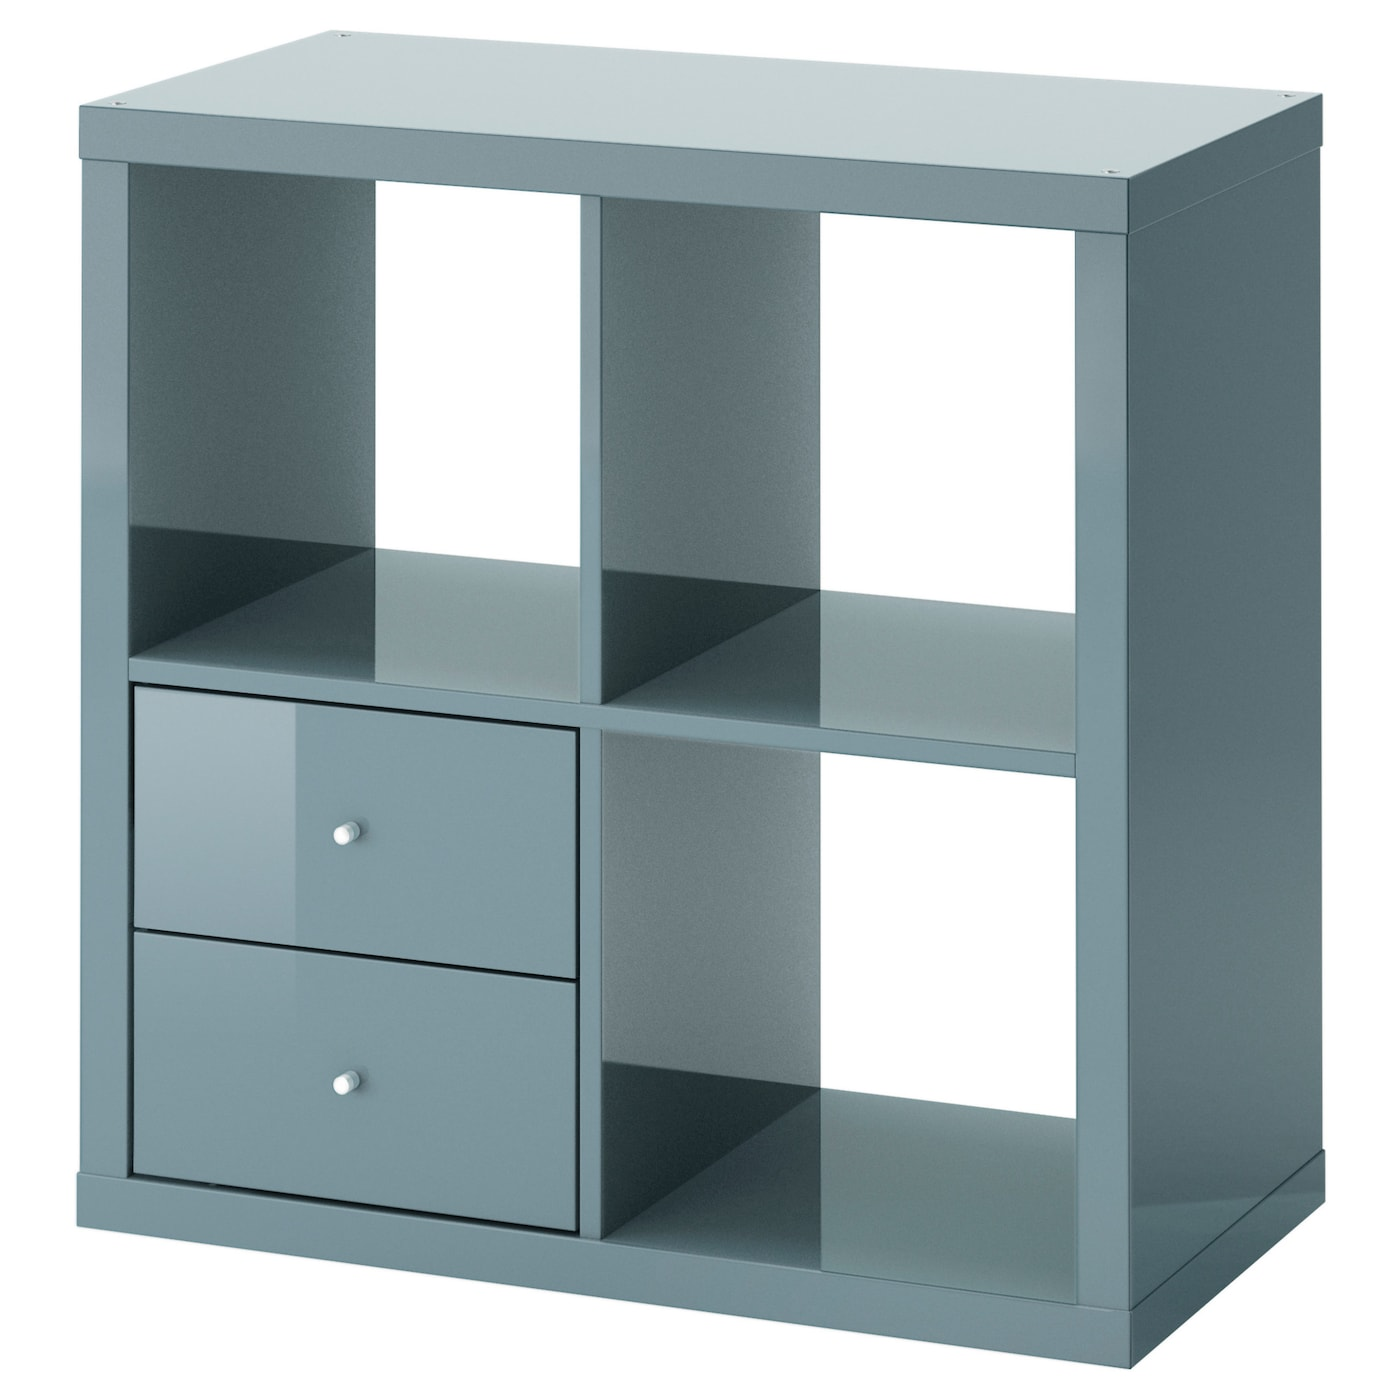 Kallax shelving unit with drawers high gloss grey turquoise 77x77 cm ikea - Porte bibliotheque ikea ...